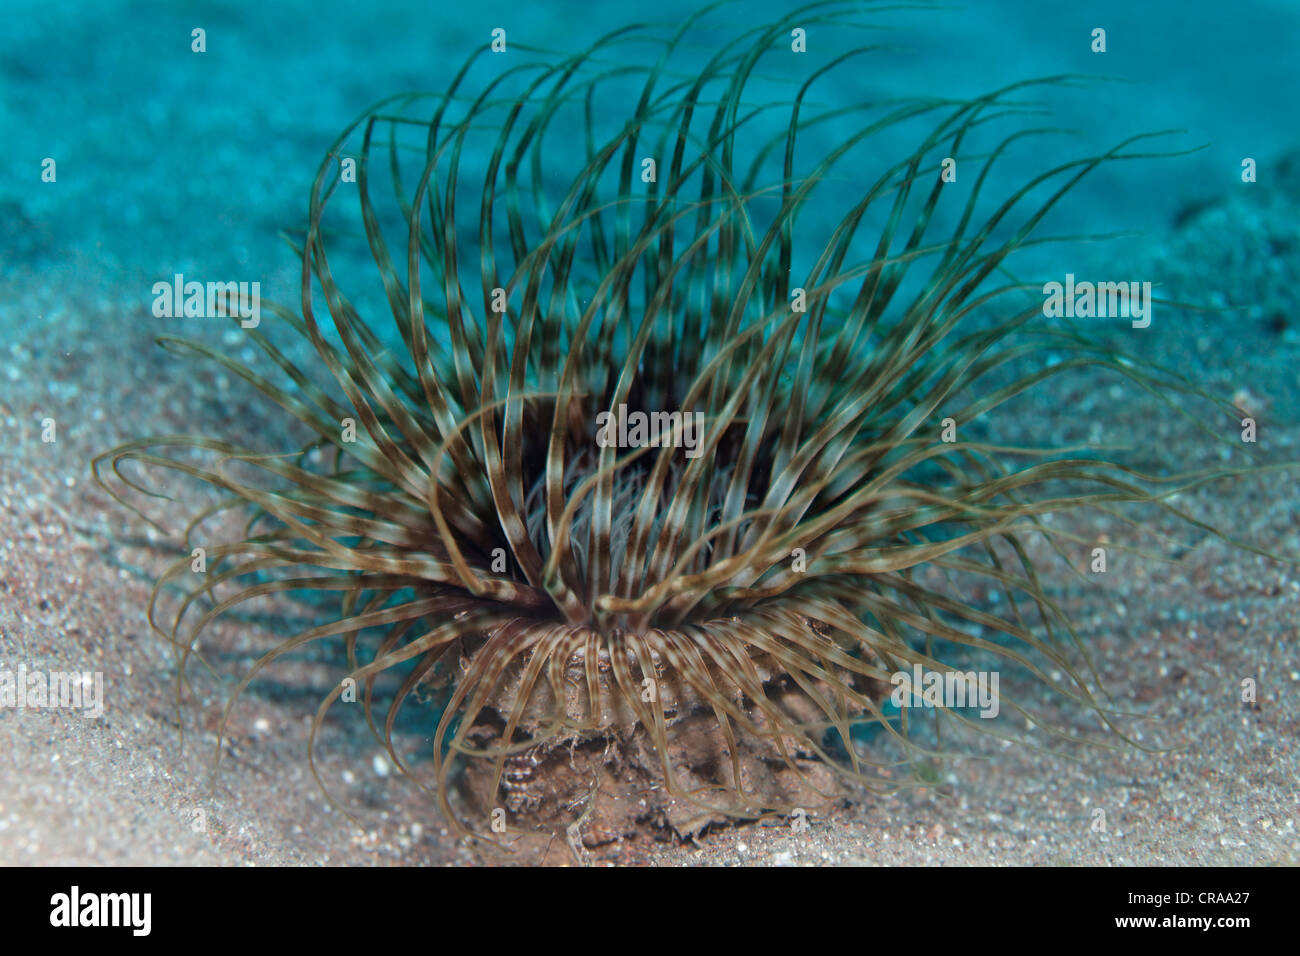 Anomone tubicoles (Ceriantharia) dans le sable, Madeira, Portugal, Europe, Océan Atlantique Photo Stock